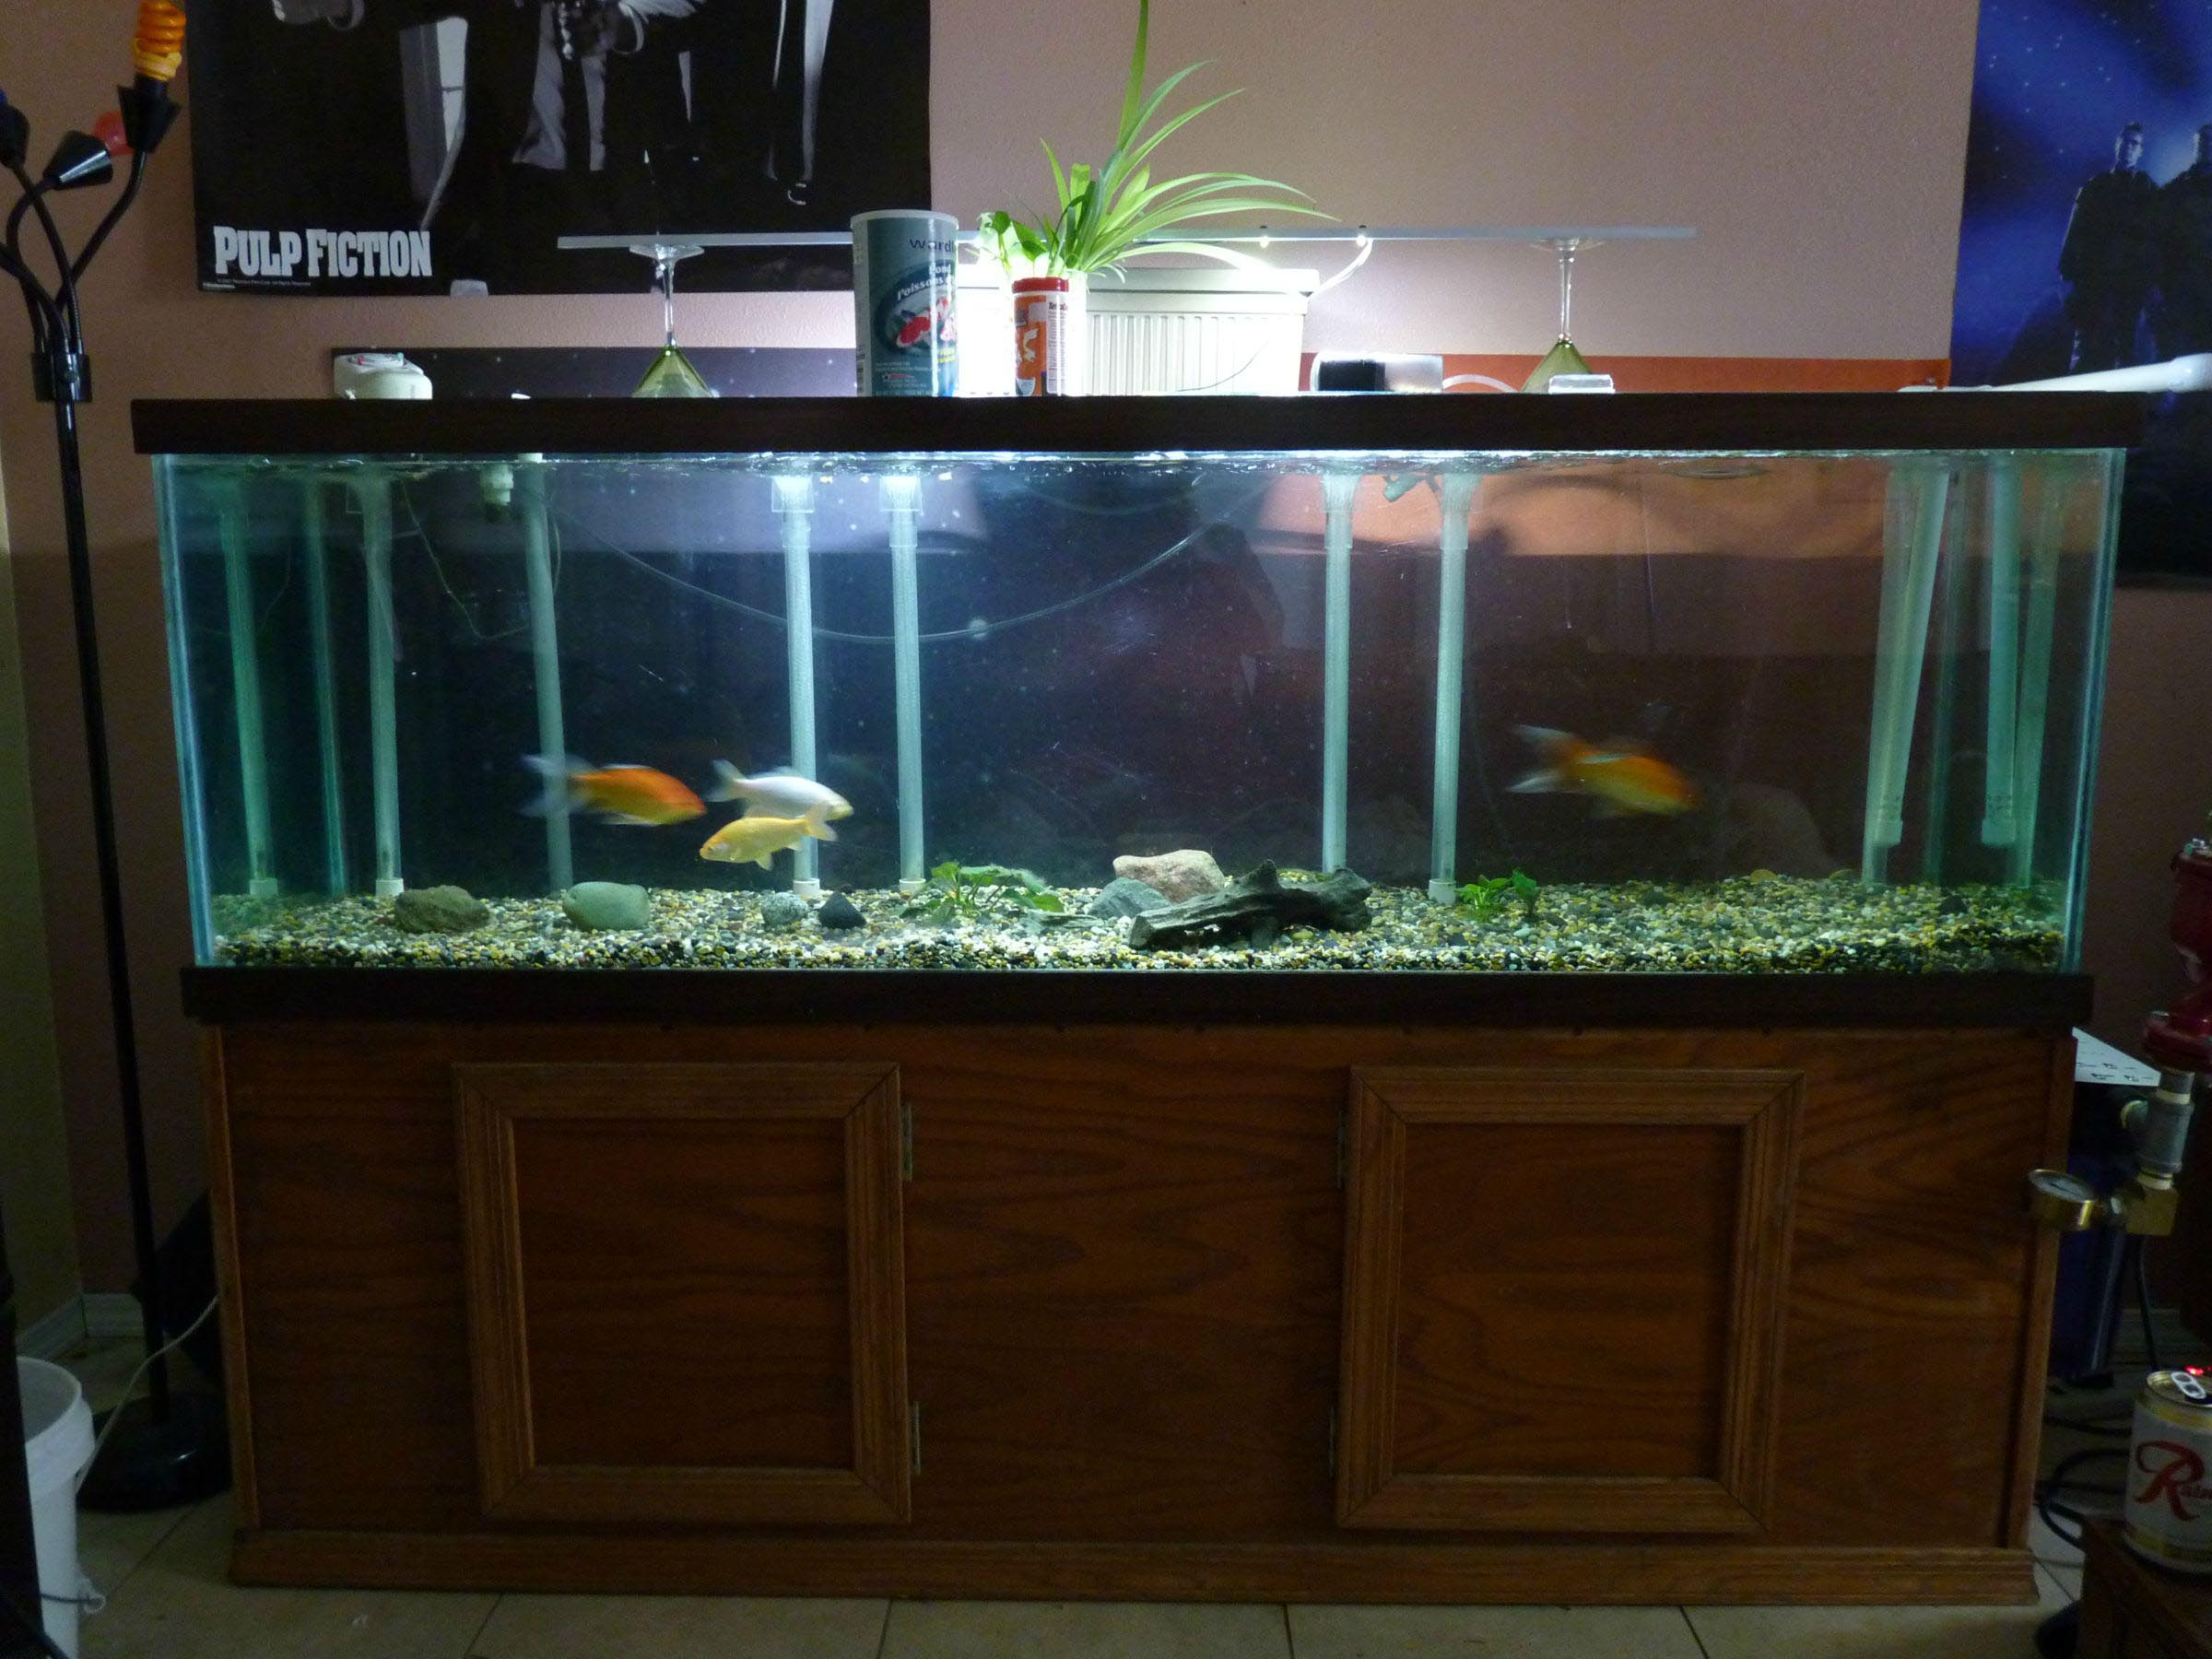 100 gallons aquarium size aquarium design ideas for 20 gallon fish tank size